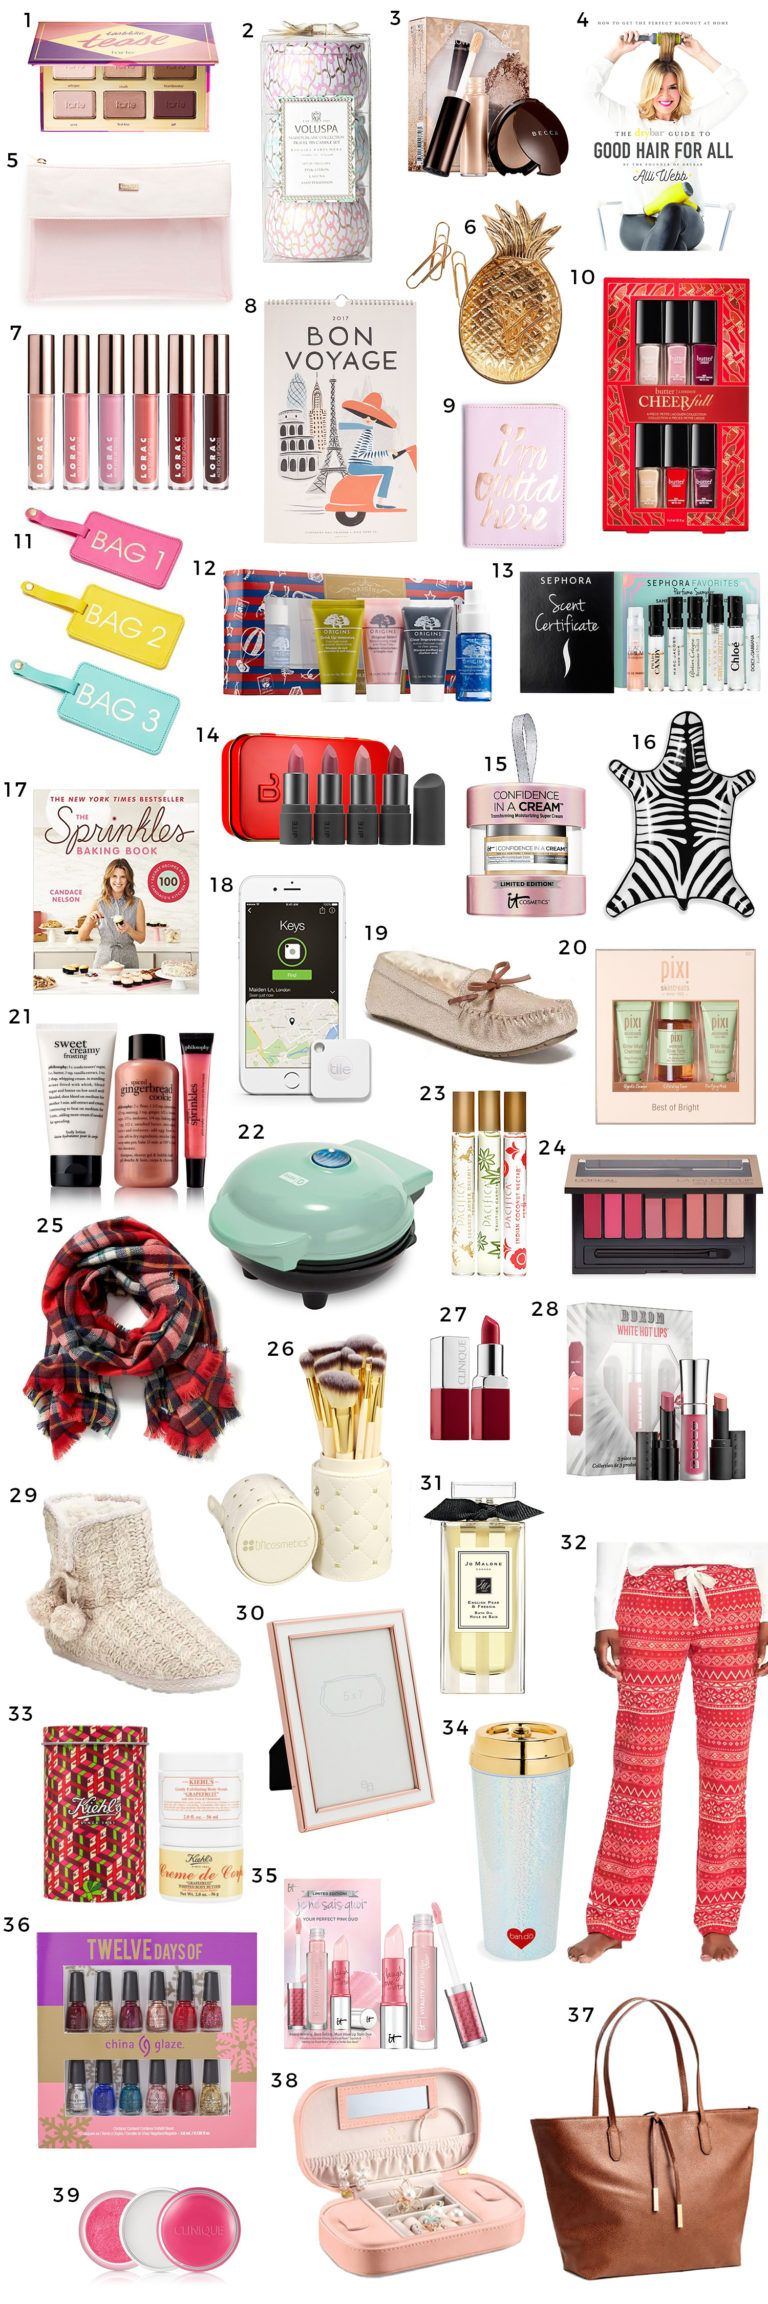 The Best Christmas Gift Ideas for Women under $25 | Christmas ...